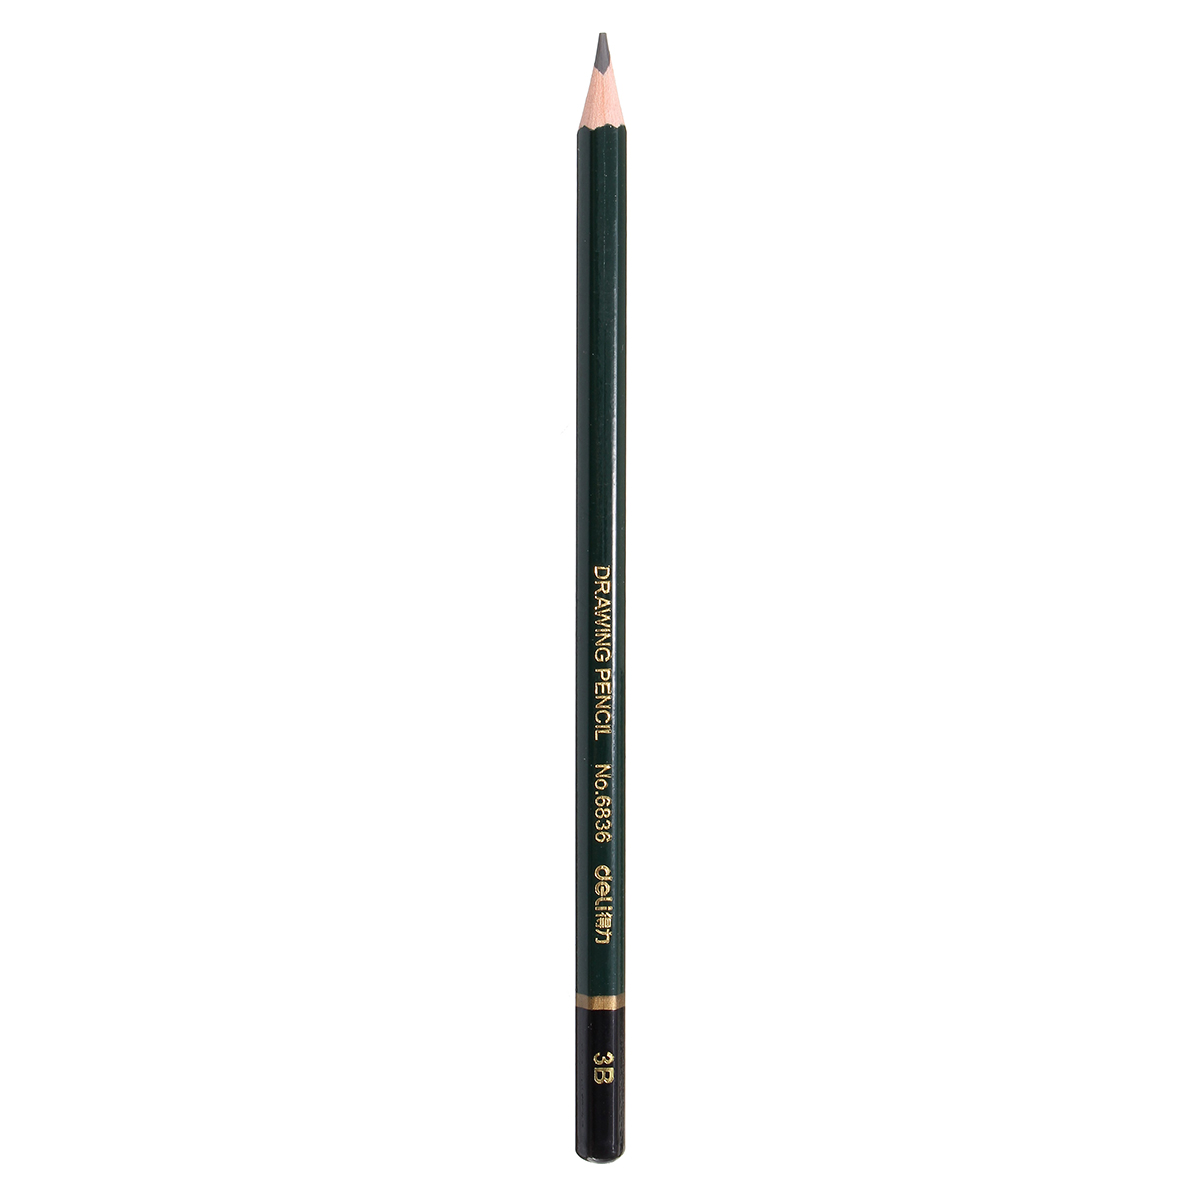 12PCS Artists Sketching Graphic Pencils for Drawing Artist